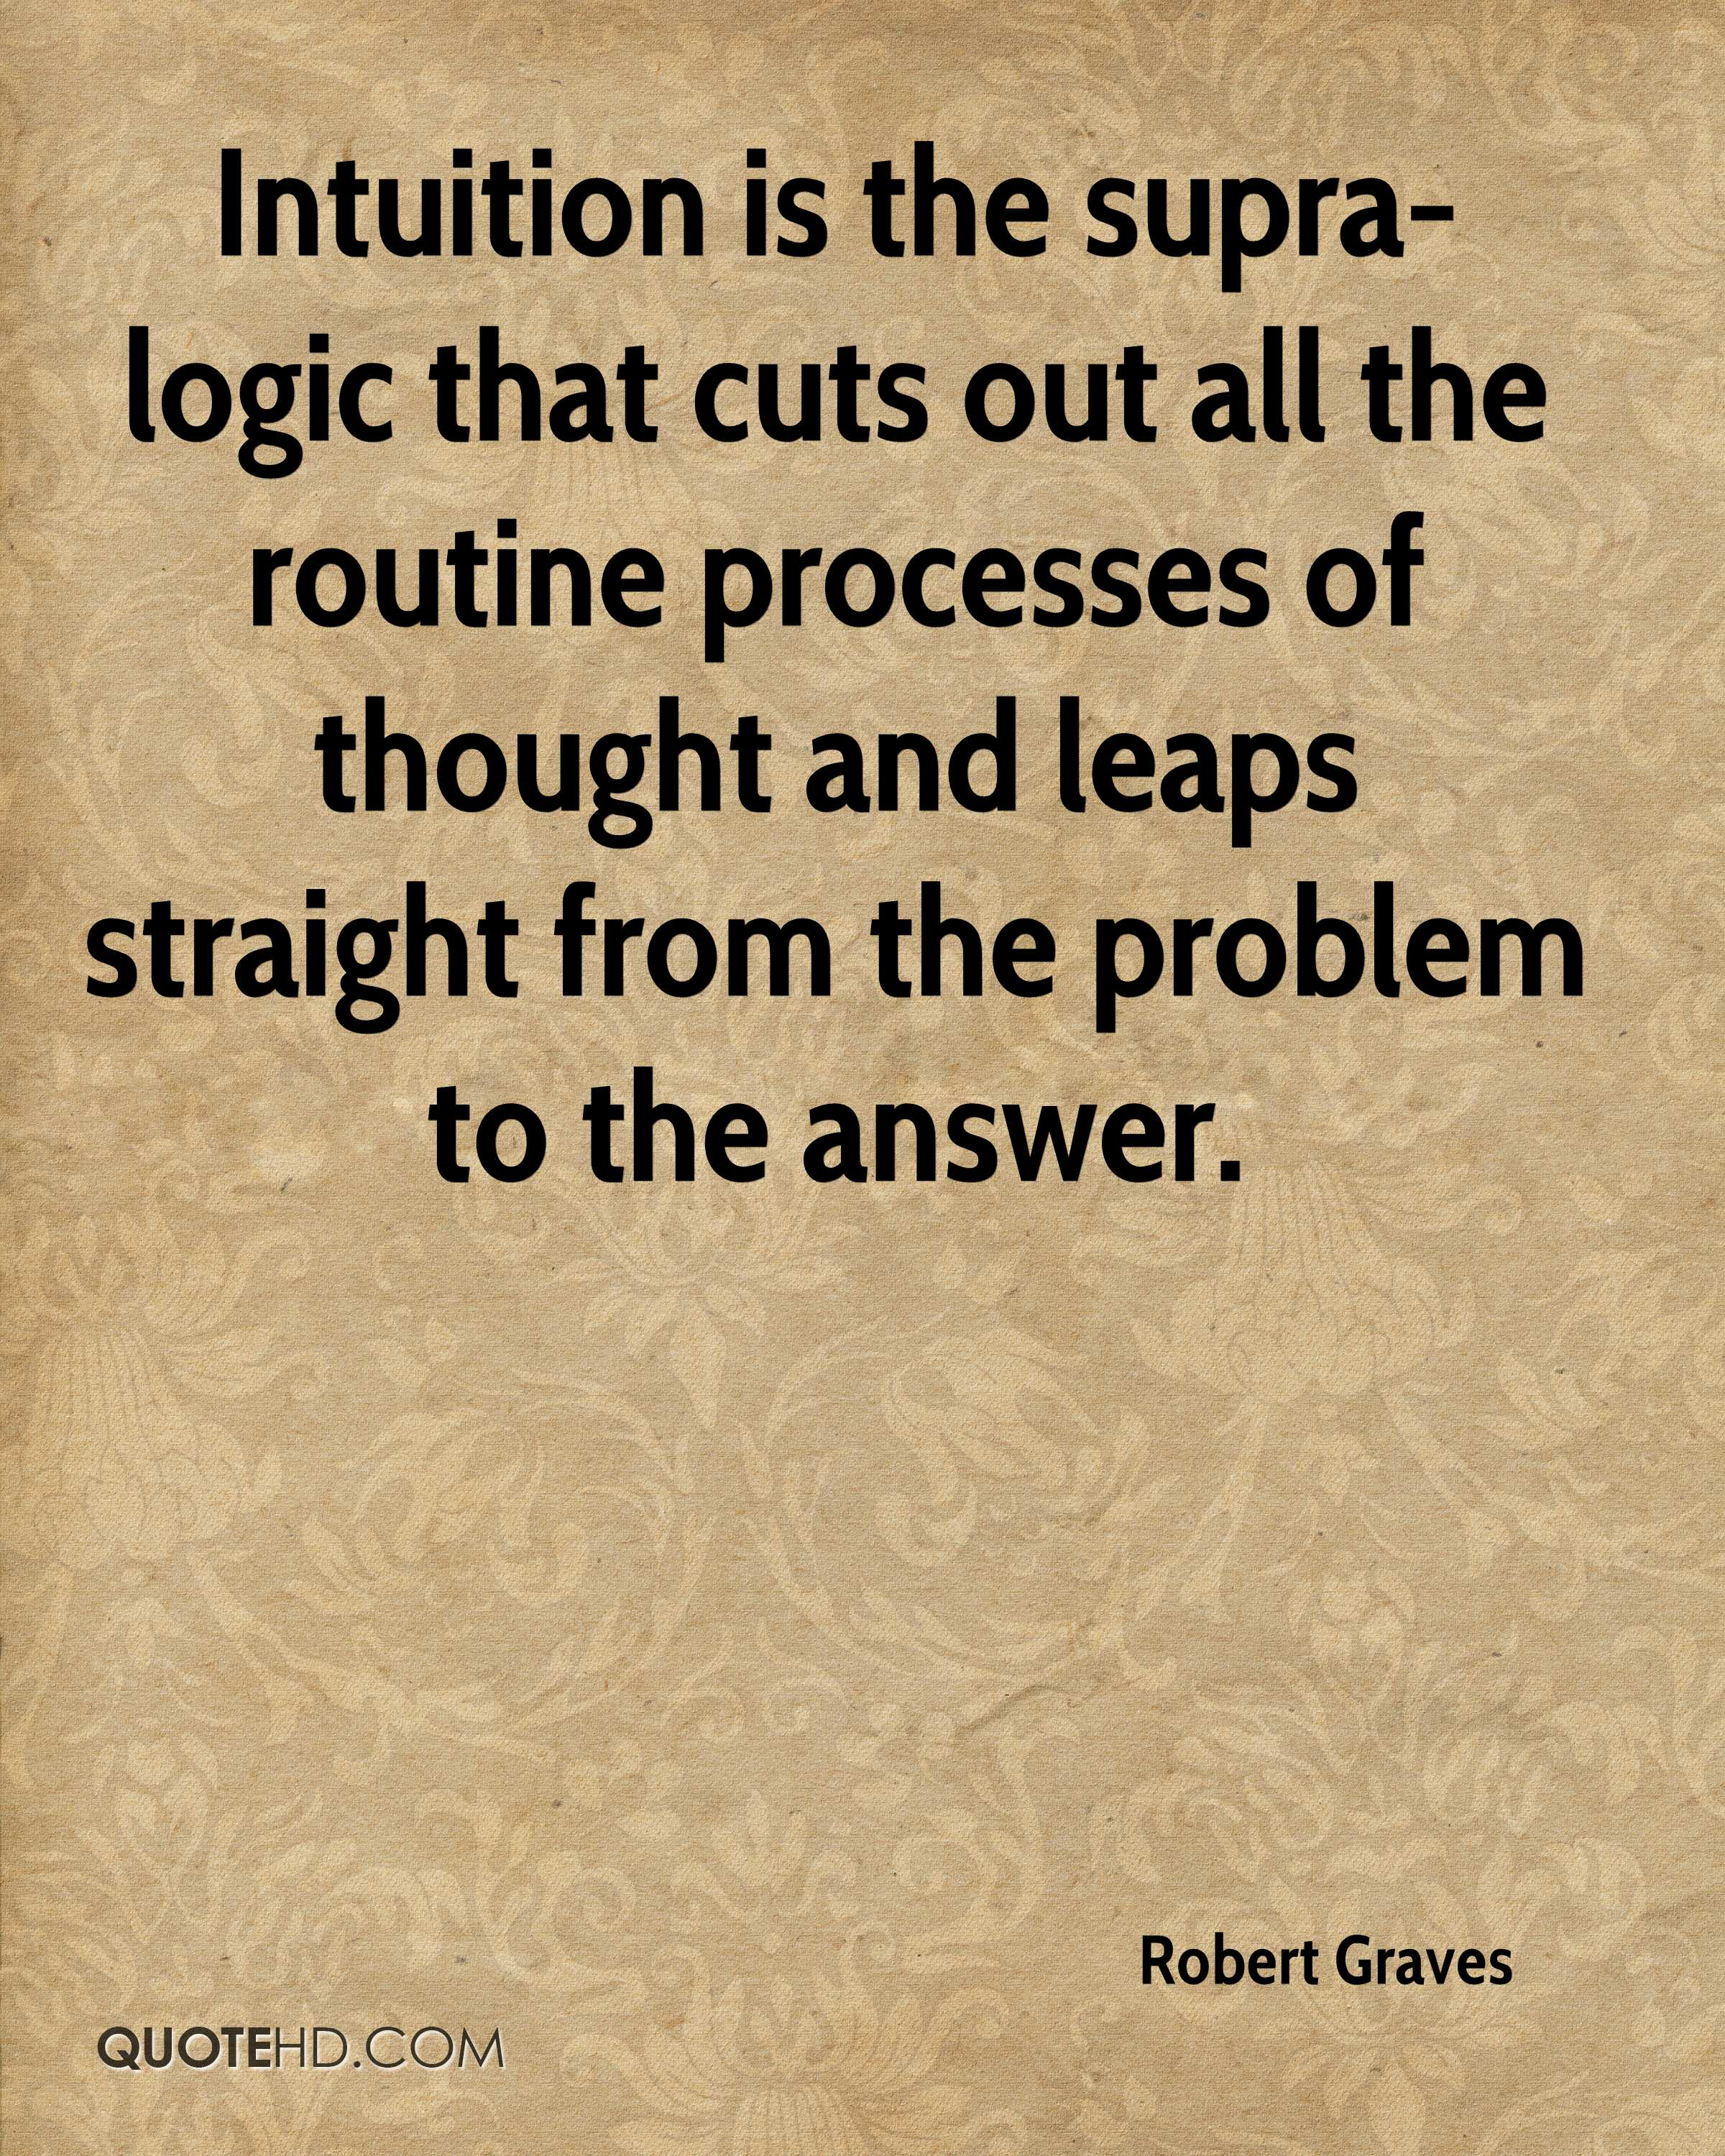 Intuition is the supra-logic that cuts out all the routine processes of thought and leaps straight from the problem to the answer.